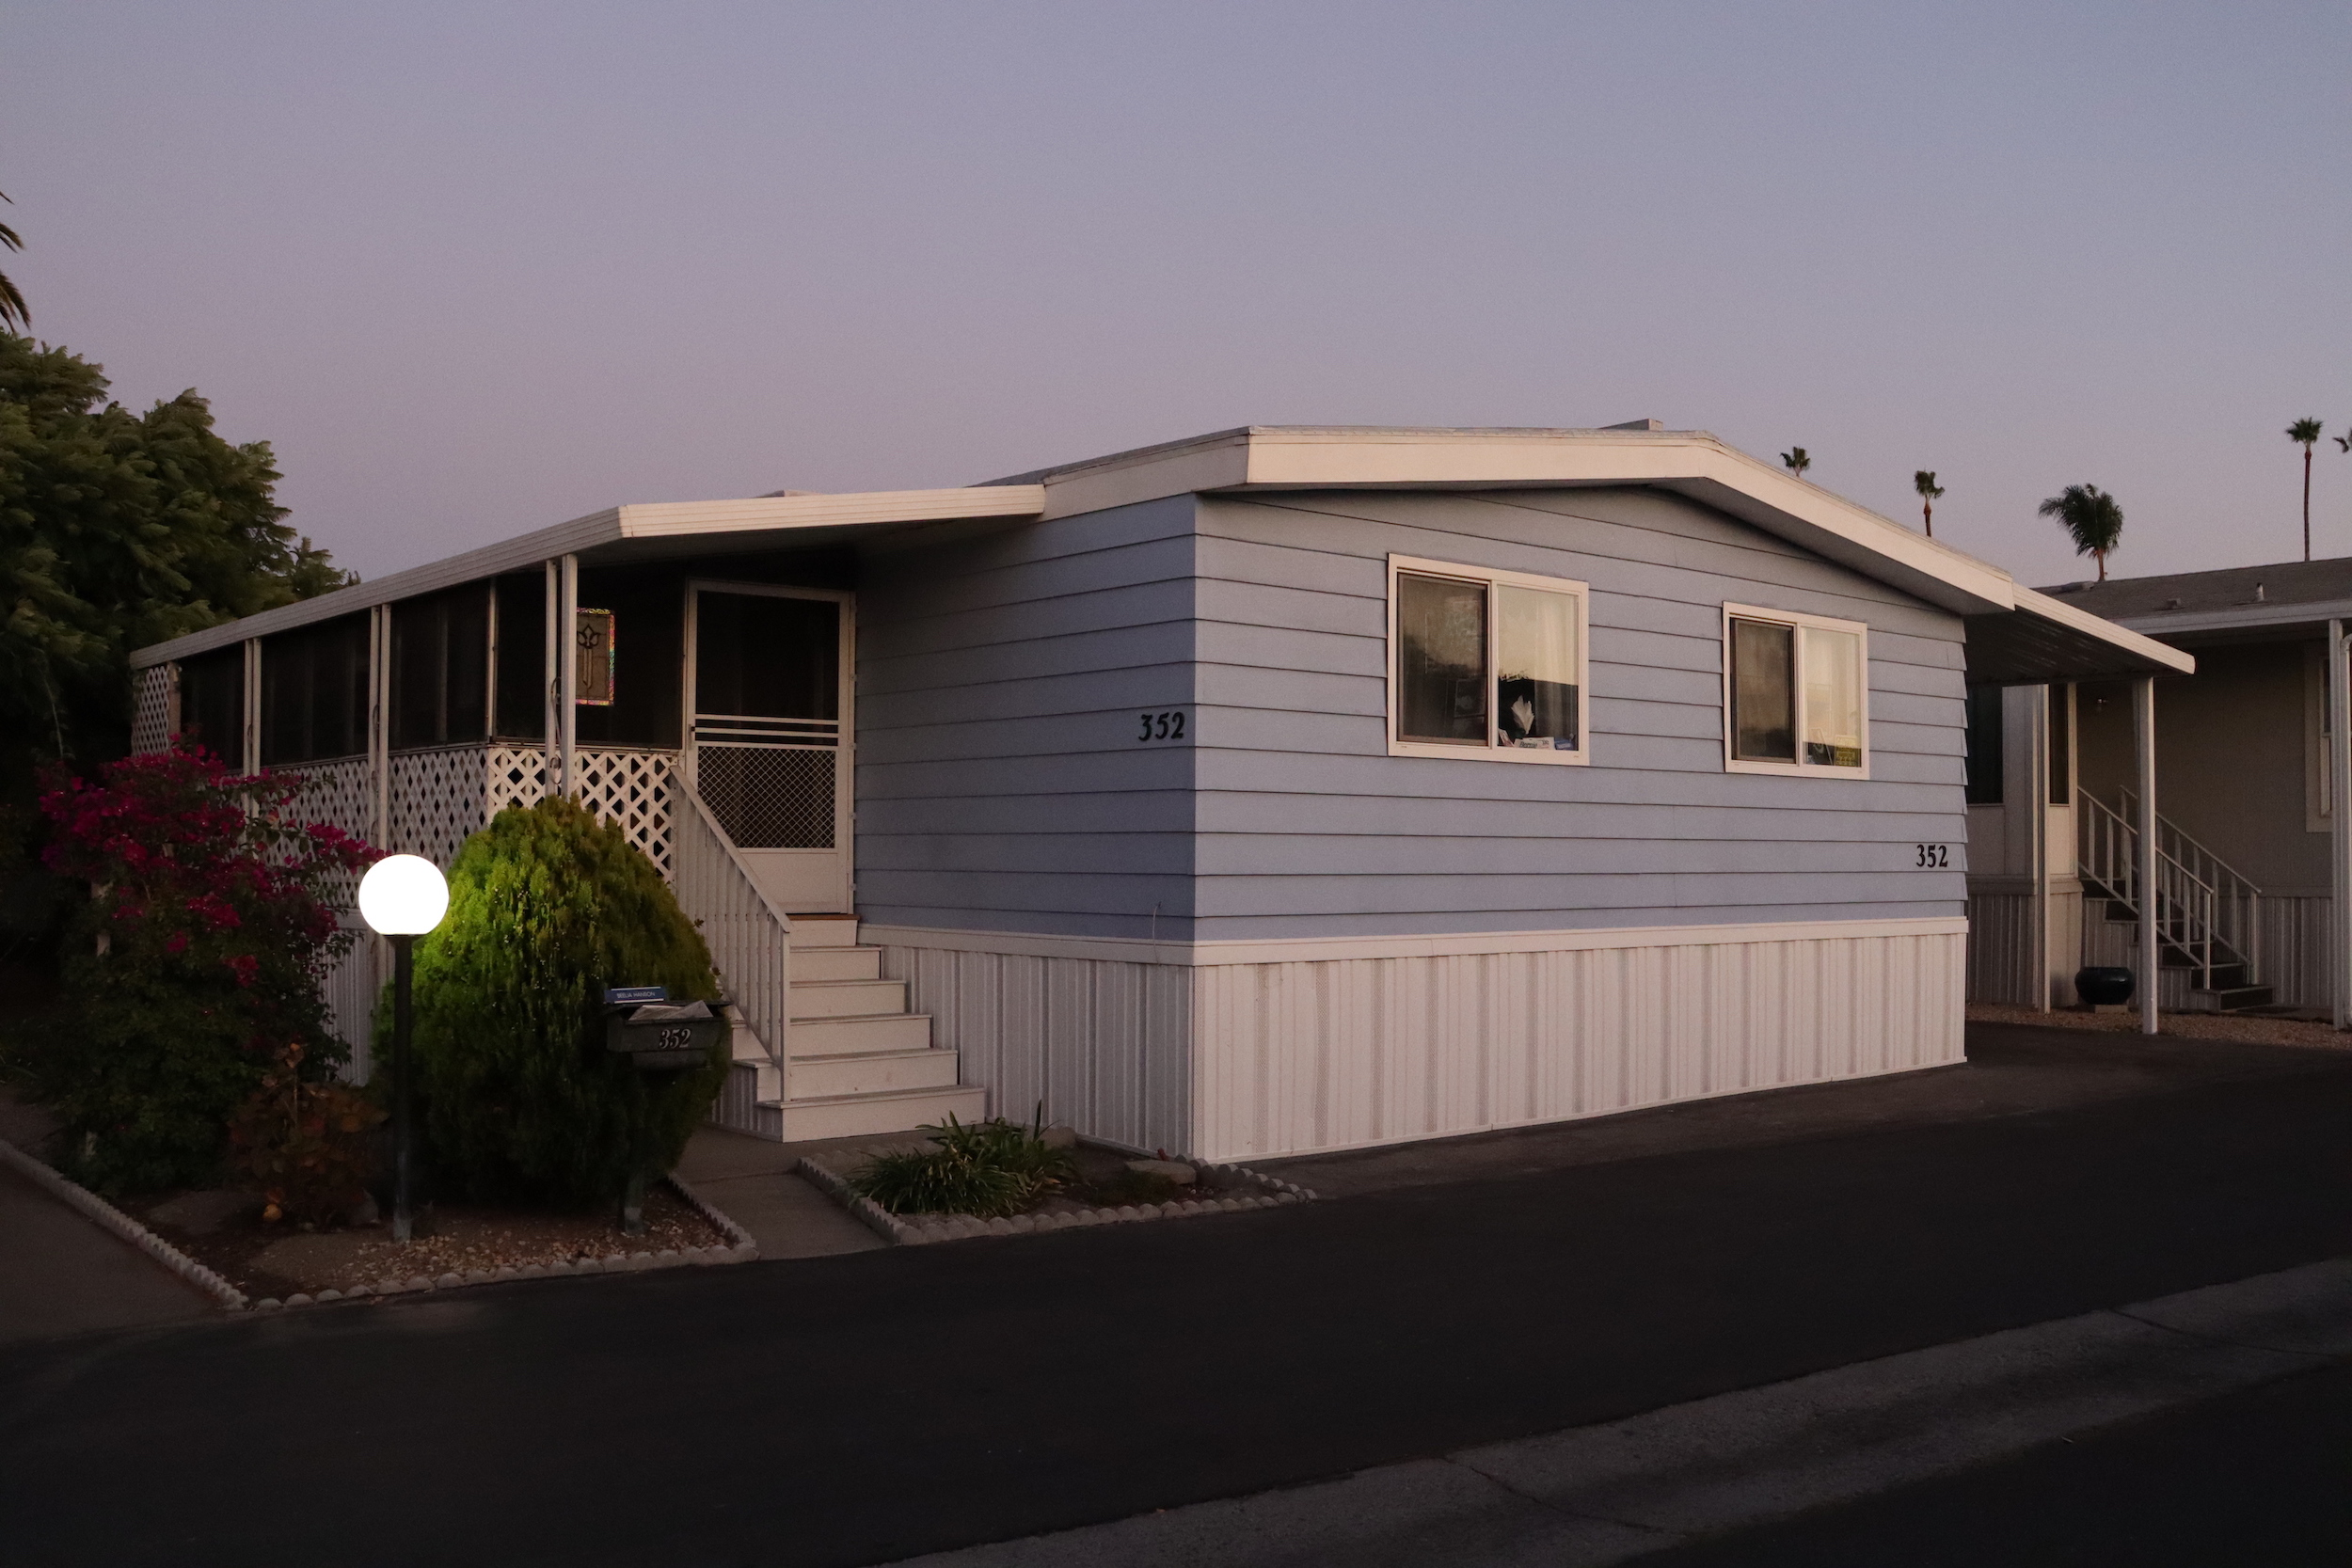 Despite existing rent control laws, mobile home residents in ... on heavy equipment by owner, used mobile home sale owner, mobile home parks sale owner, apartments for rent by owner, mobile homes for rent,